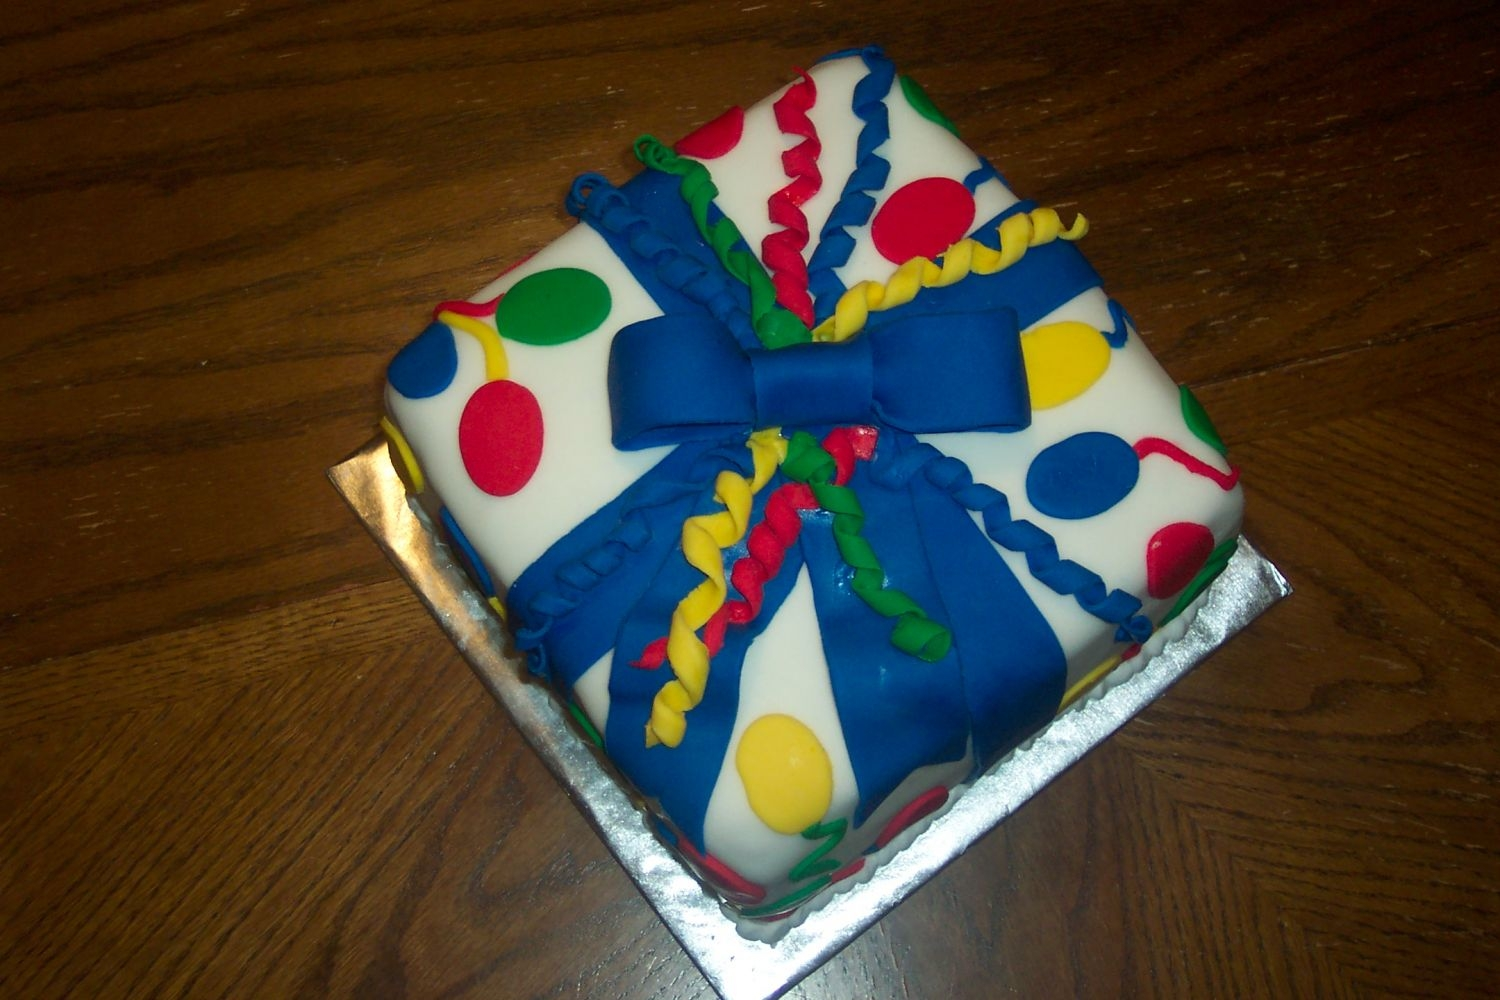 Wilton 3 Class Cake This was the cake I made while learning how to use fondant in Course 3. I sent it in for my sons birthday which worked really well. The...